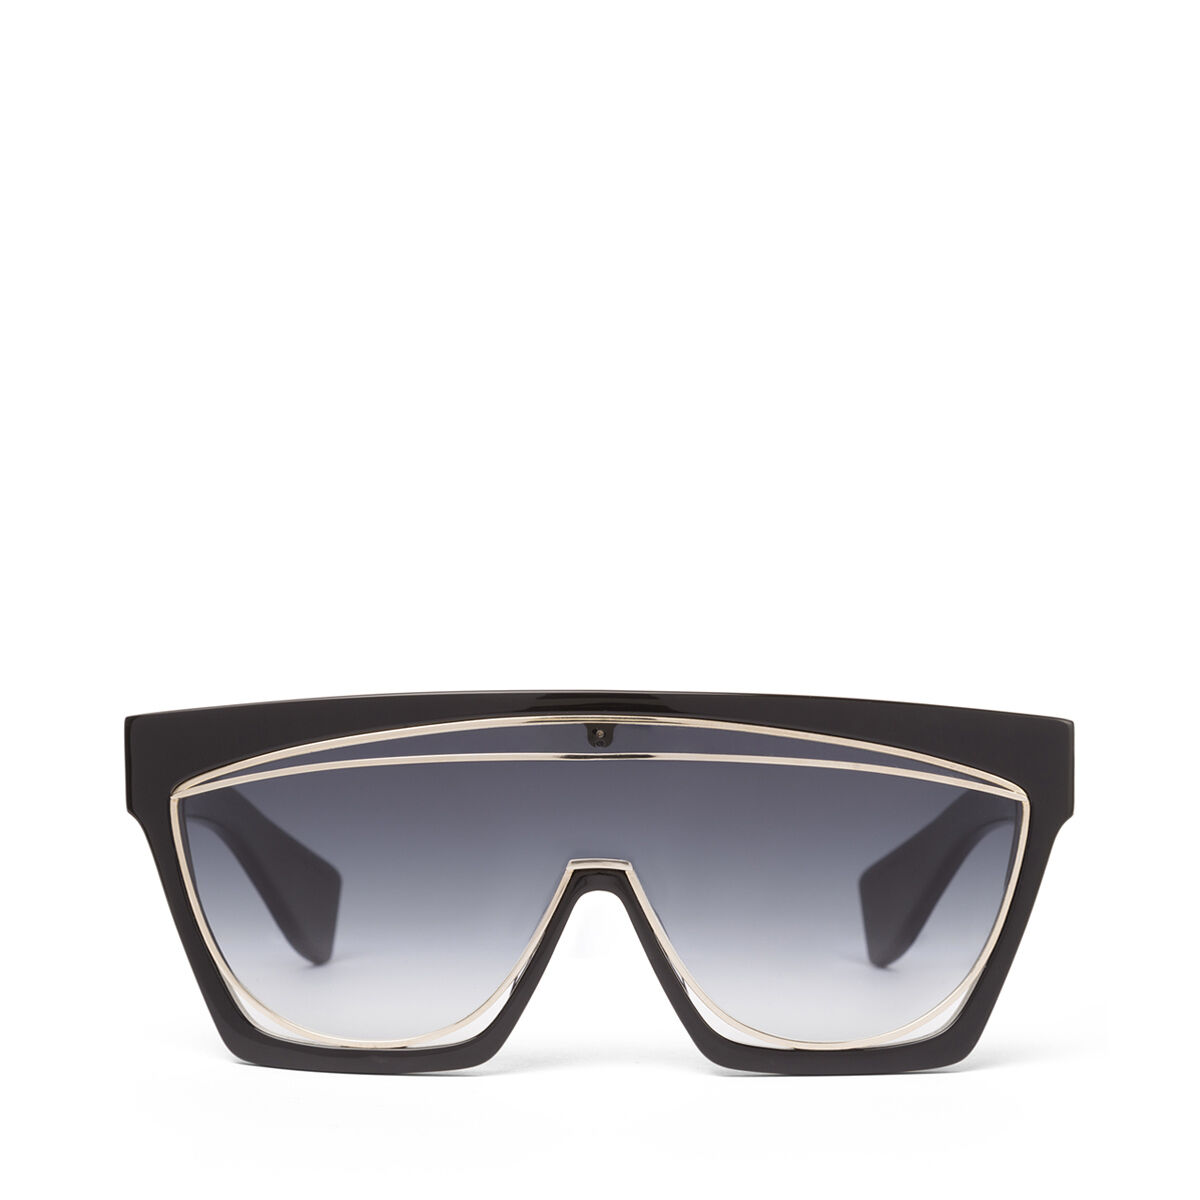 LOEWE Masque Sunglasses Black/Gradient Smoke all